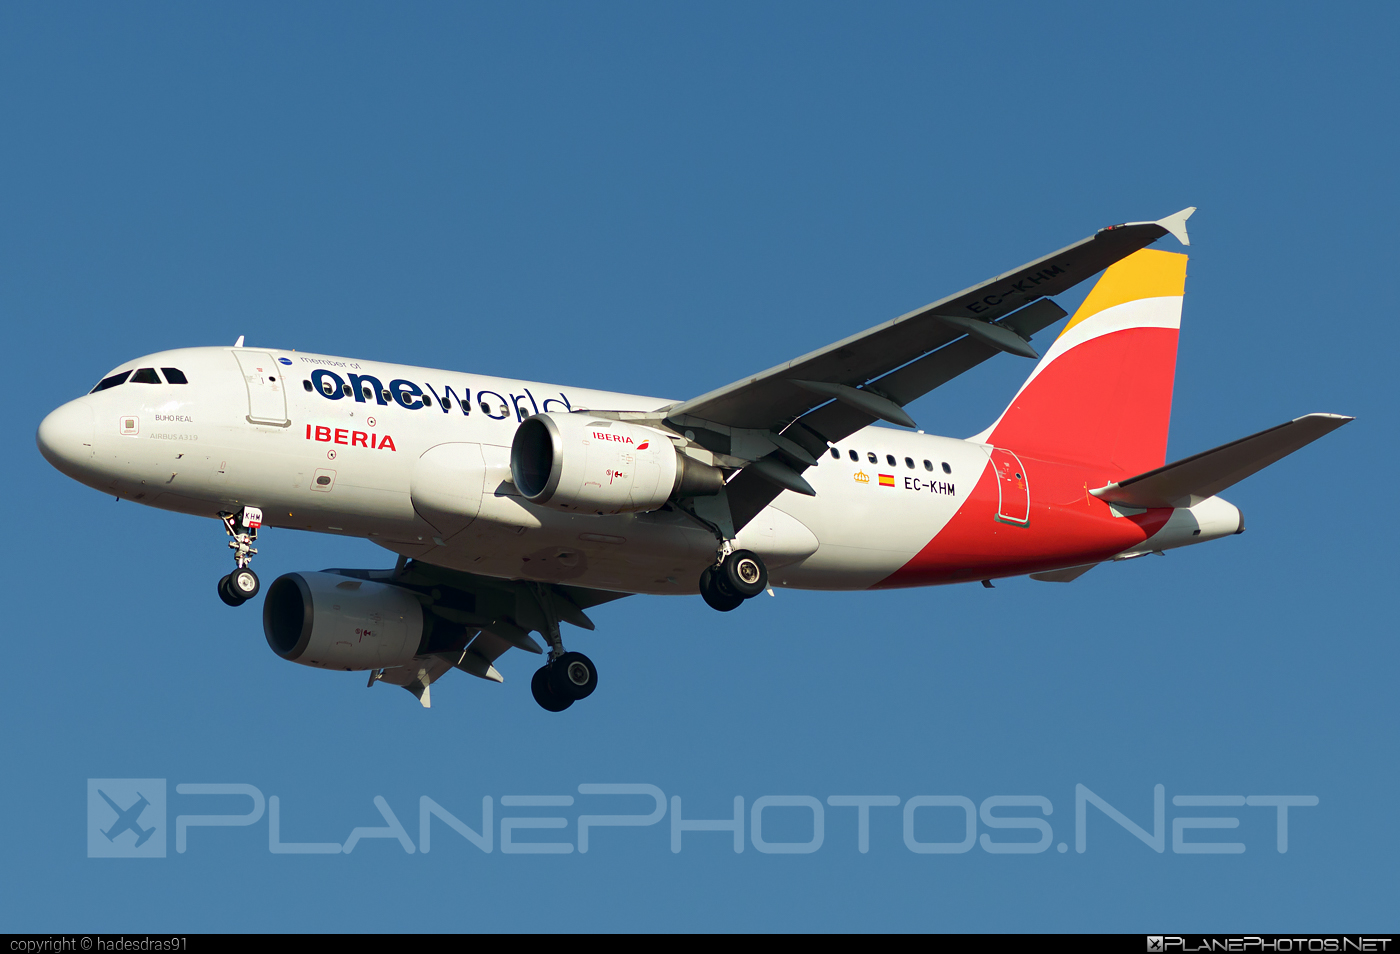 Airbus A319-111 - EC-KHM operated by Iberia #a319 #a320family #airbus #airbus319 #iberia #oneworld